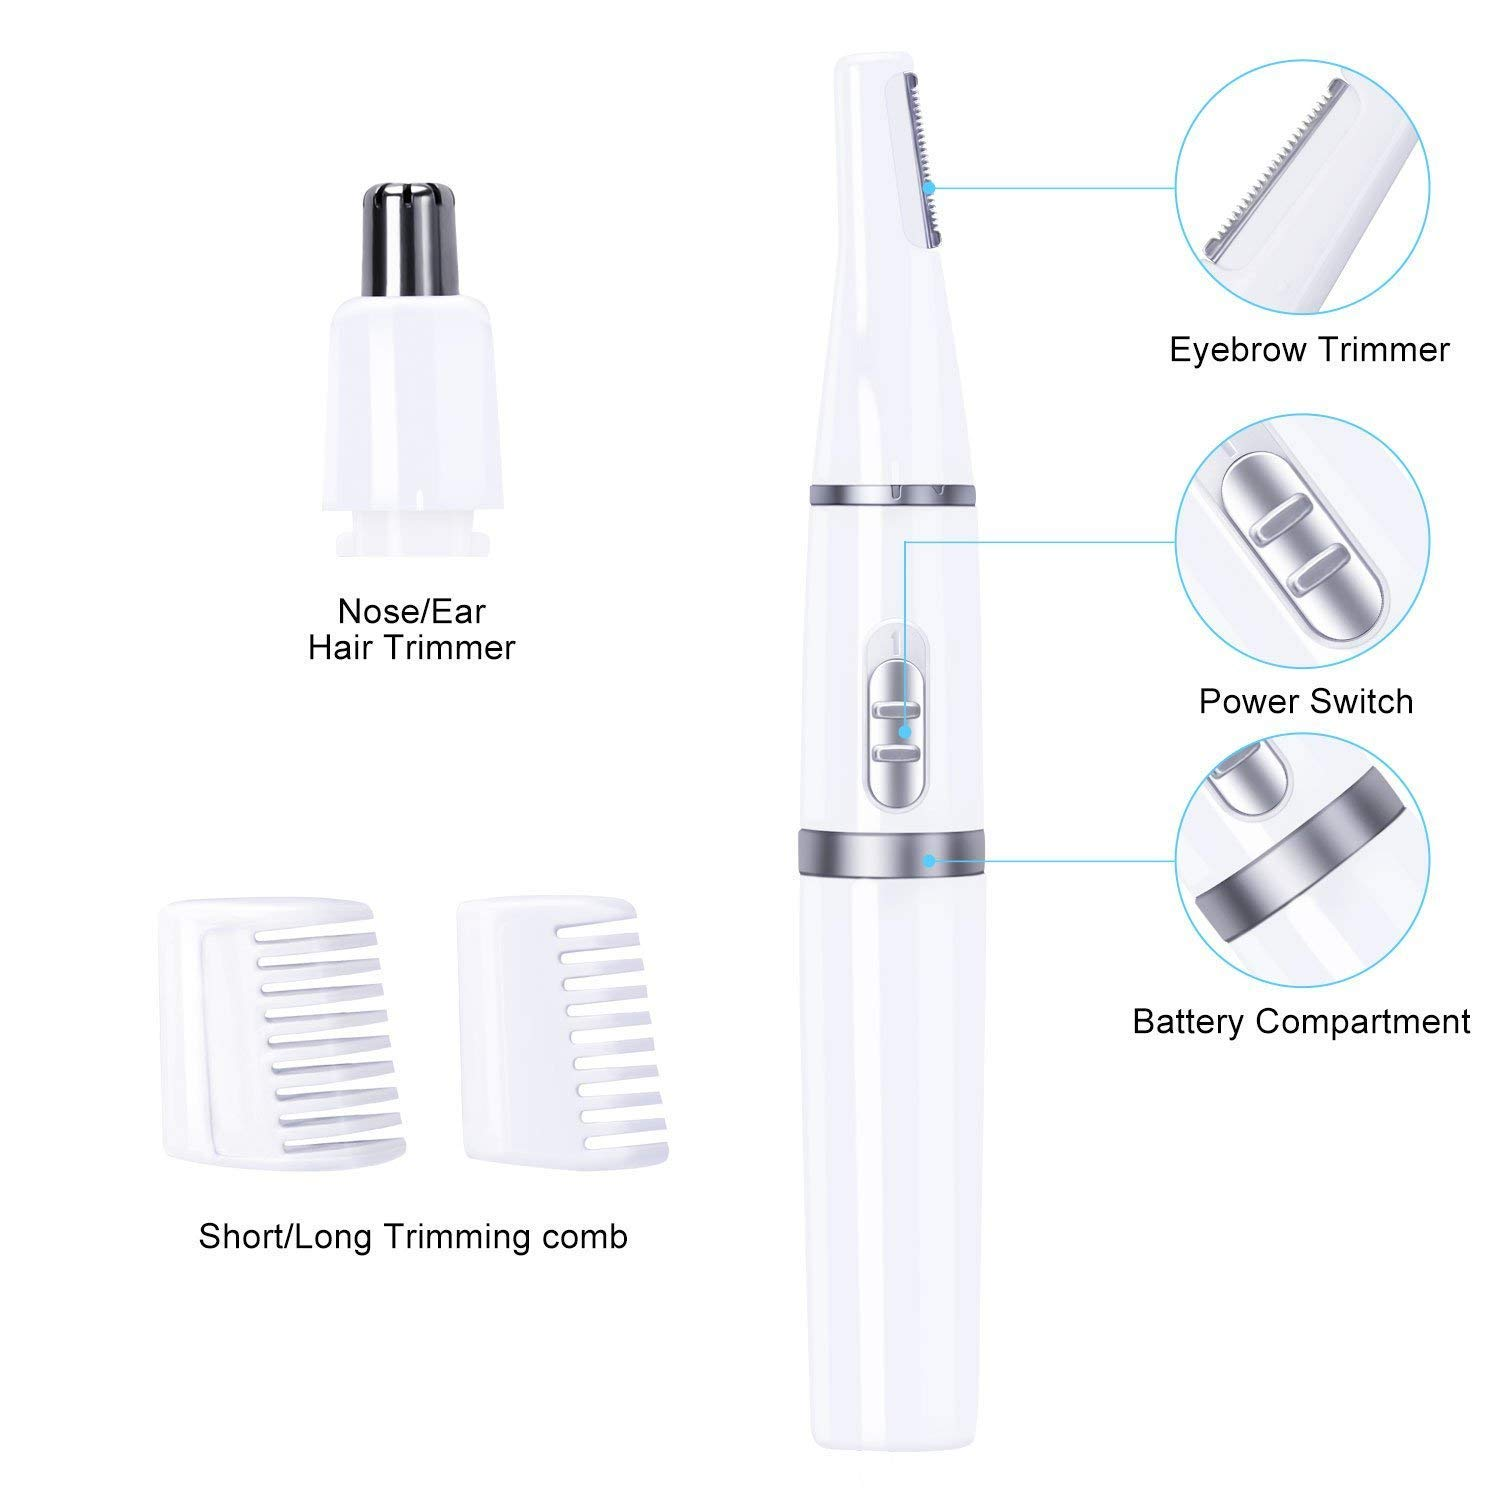 Wishesport Electric Nose Ear Hair Trimmer, Eyebrow Trimmer, 2-in-1 Facial Body Hair Shaver Washable Blades for Men and Women (White)